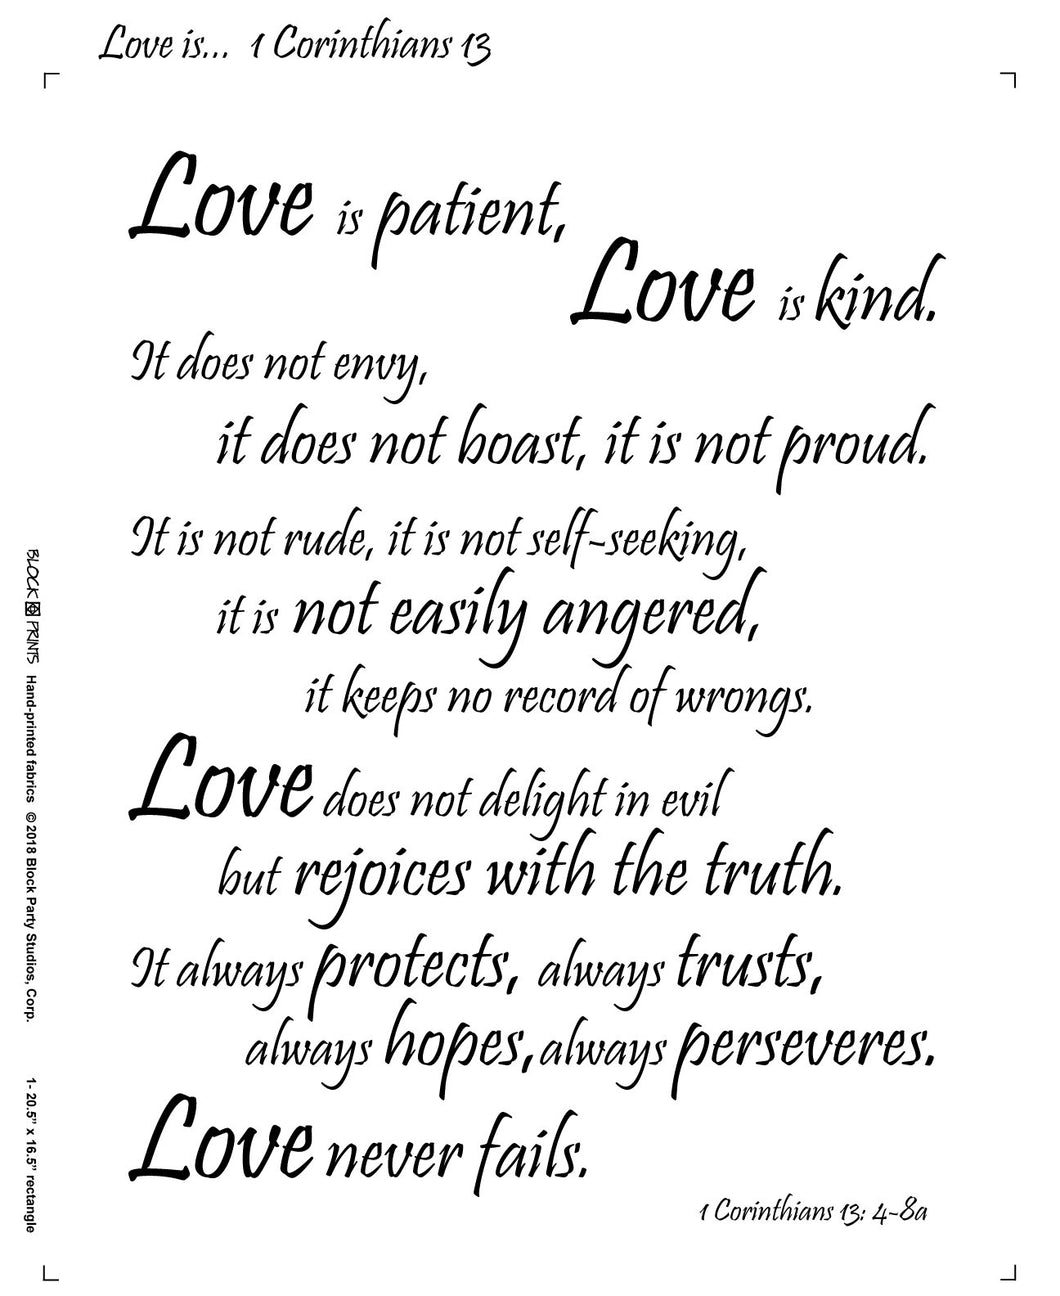 Love Is 1 Corinthians 13 Fabric Panel